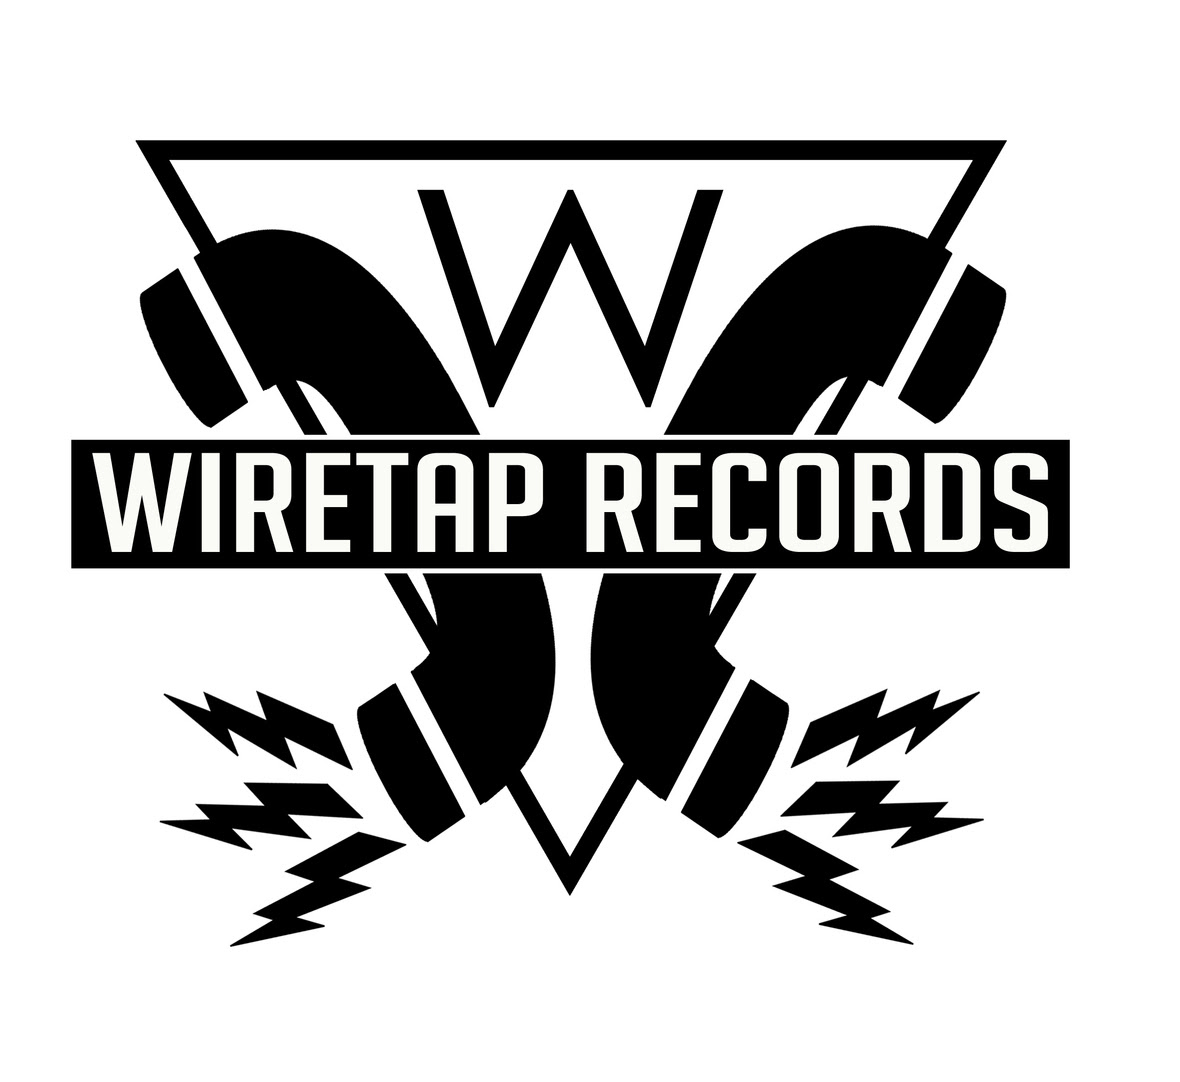 wiretap records logo white